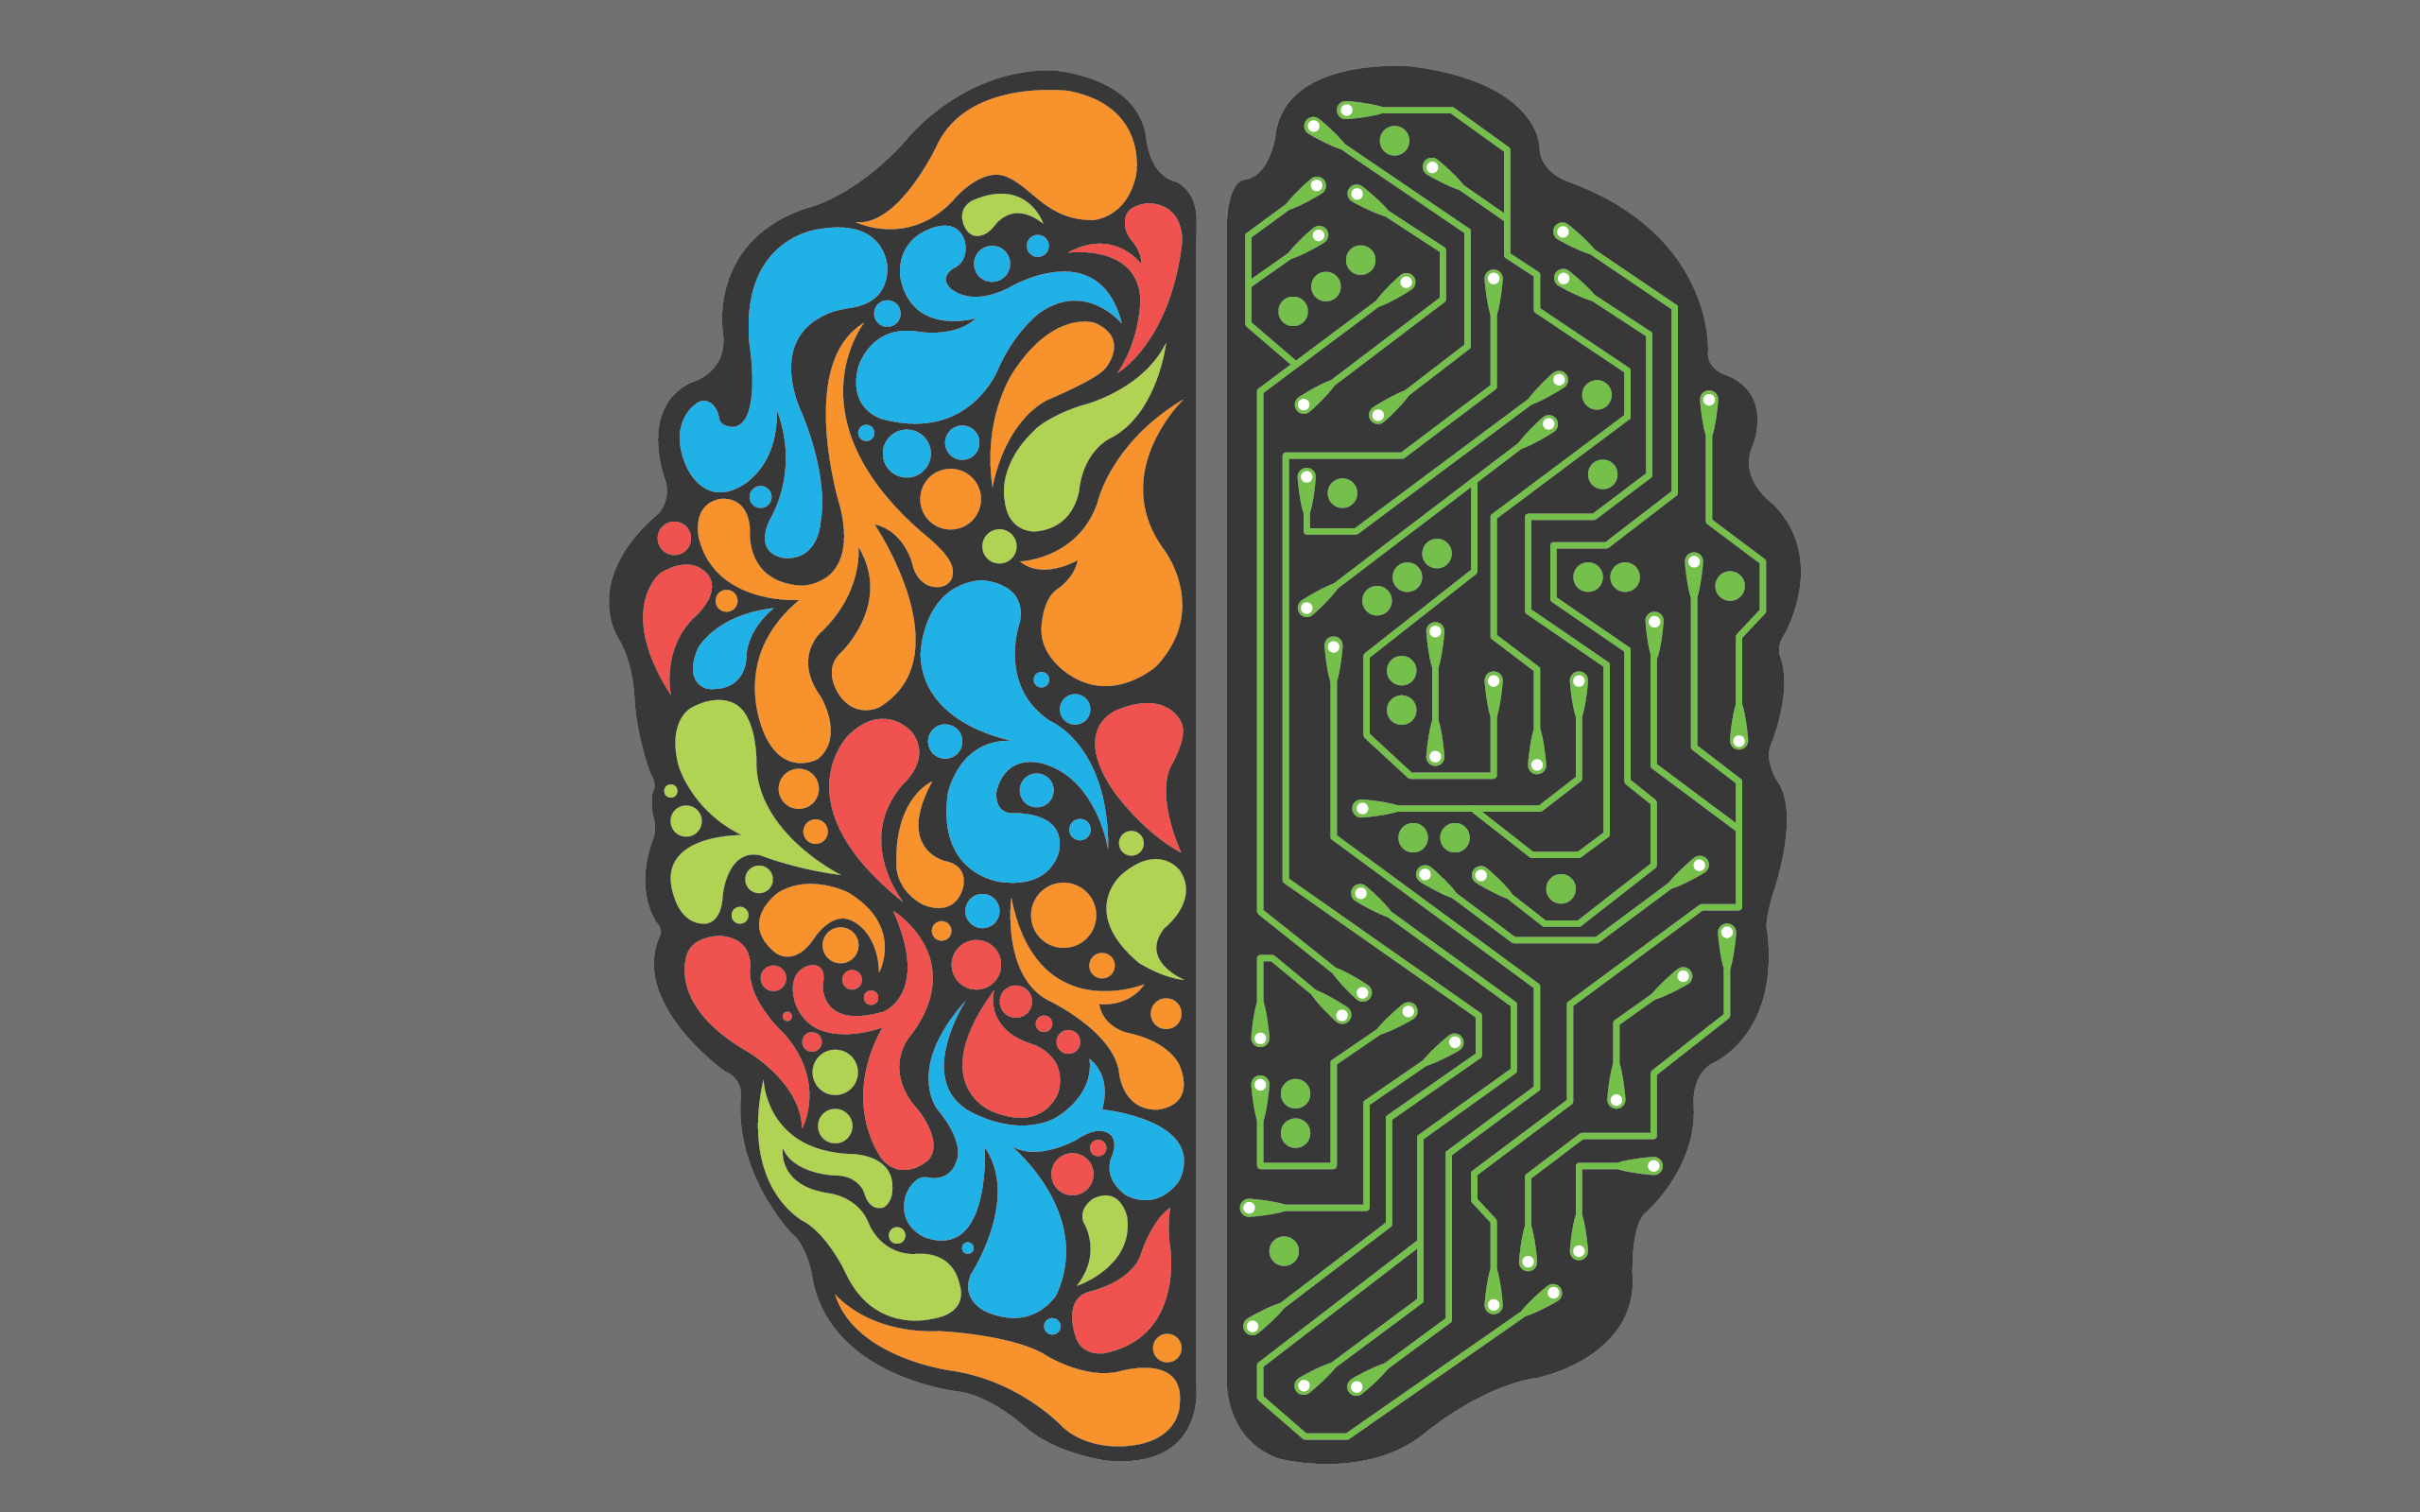 . PlusPng.com two sides of the brain HD Wallpaper 2560x1600 - Brain HD PNG